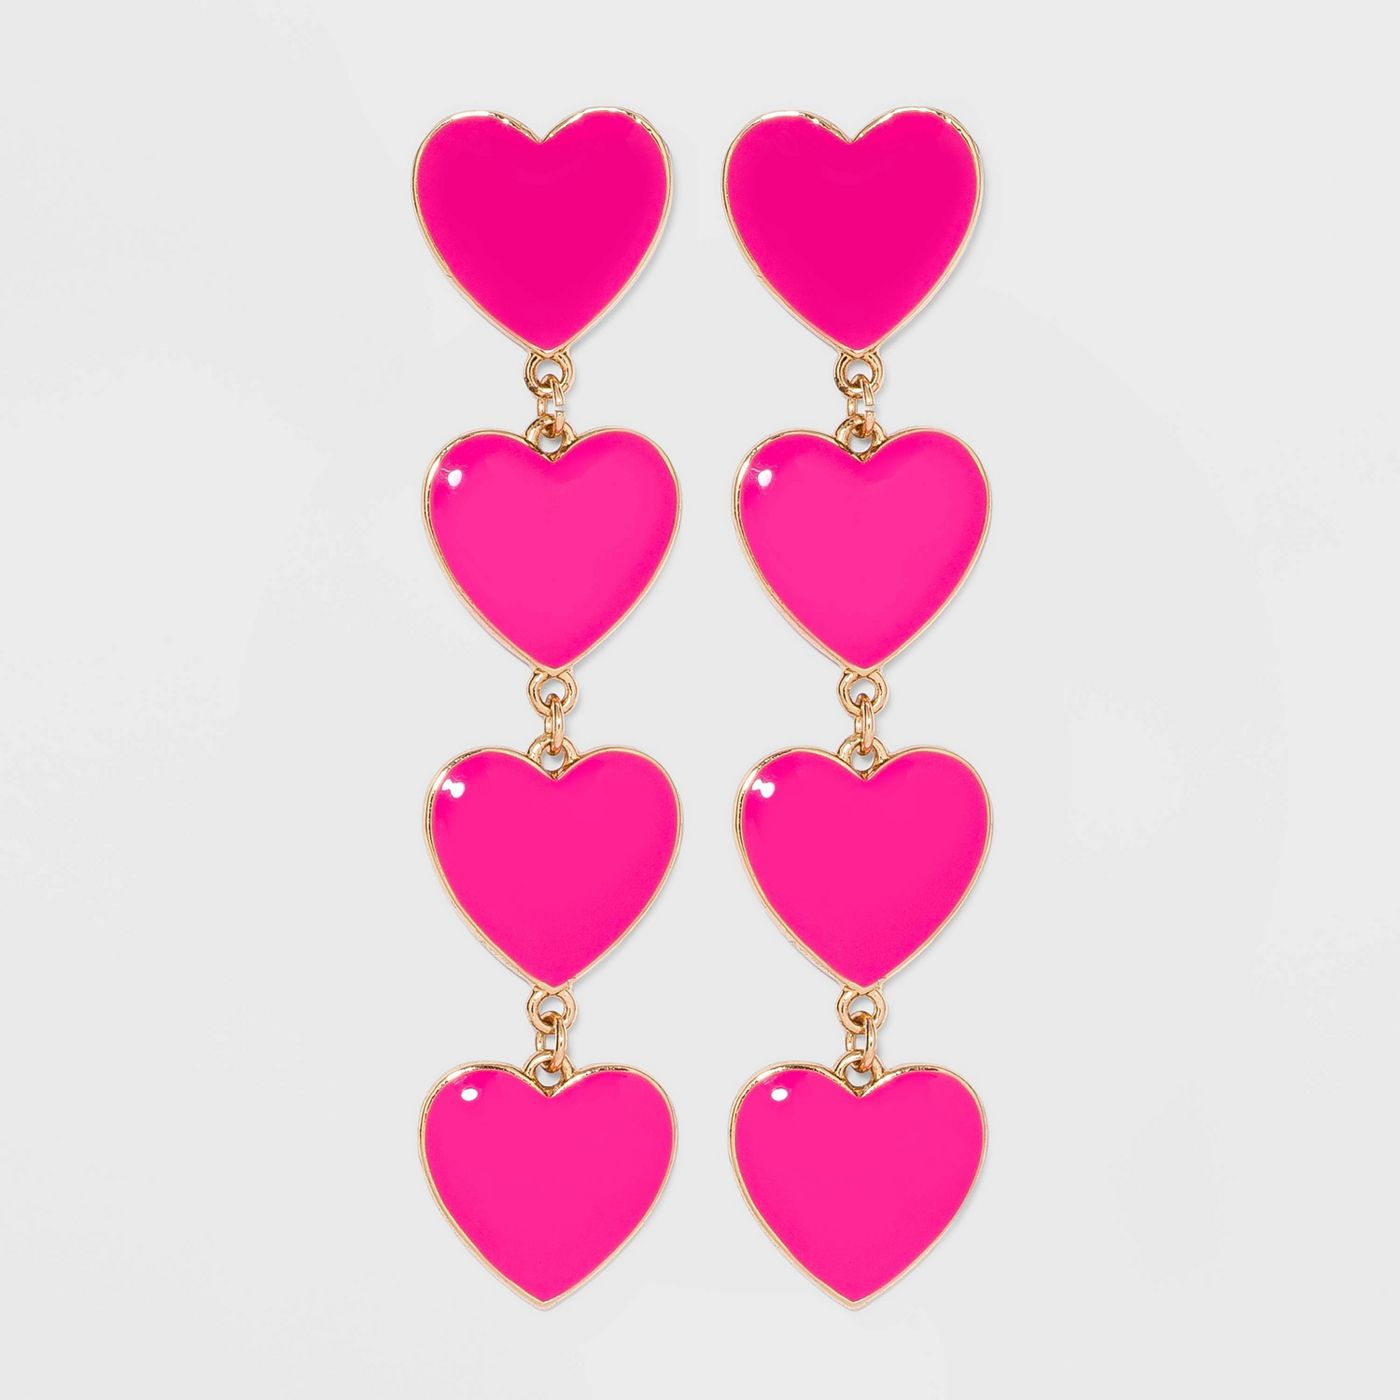 SUGARFIX by BaubleBar Stacked Heart Drop Earrings - image 1 of 7